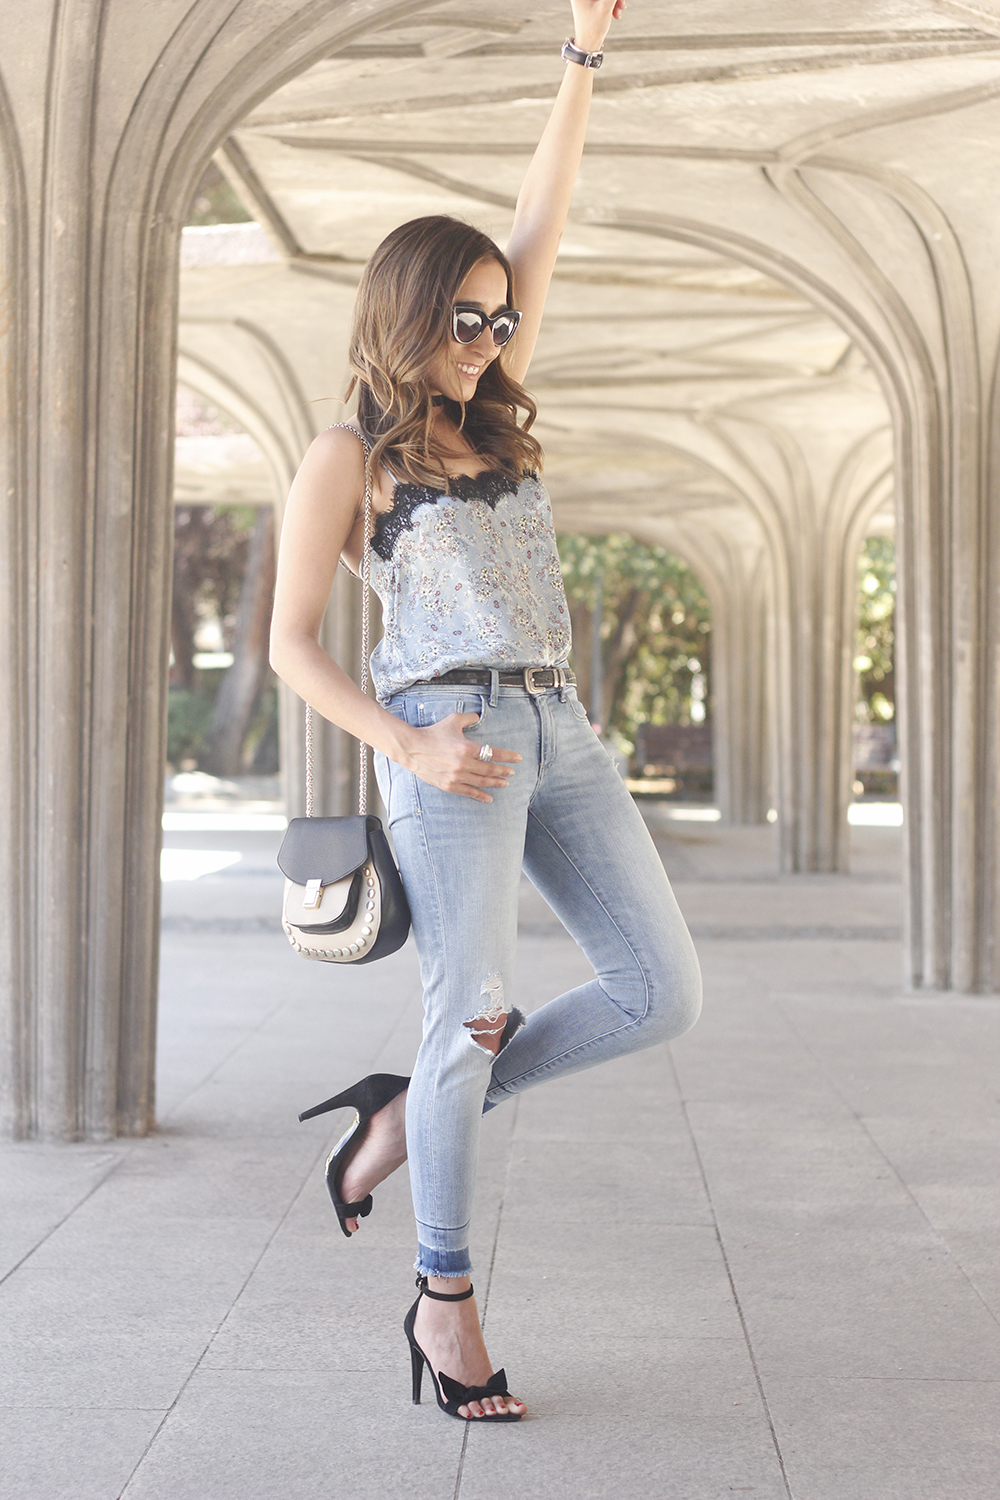 Lace top with skinny jeans heels summer outfit fashion style accesories16